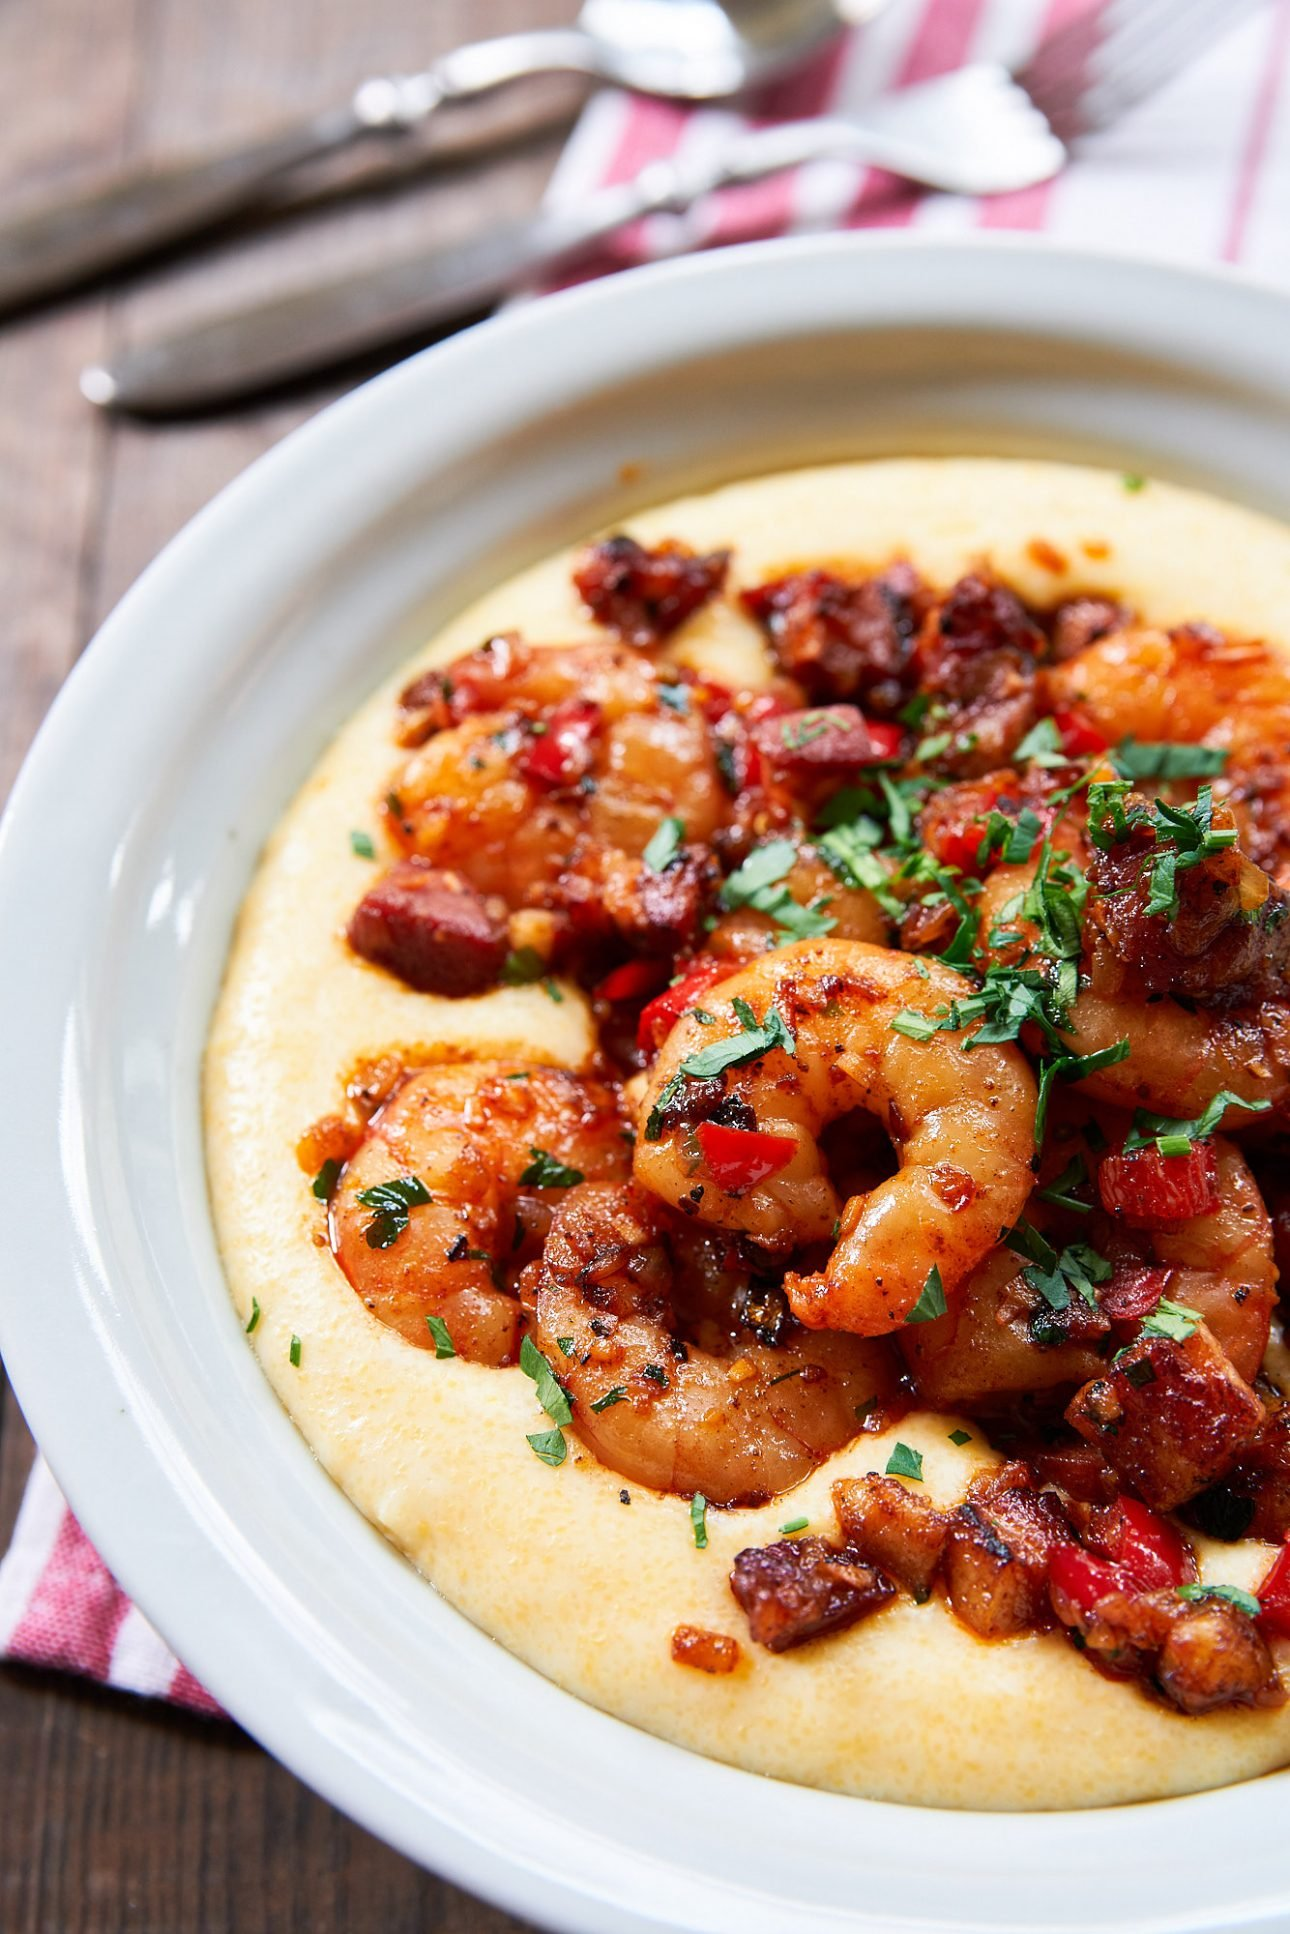 With smoky garlicky shrimp on a bed of rich cheesy grits, this Shrimp and Grits recipe is the best.